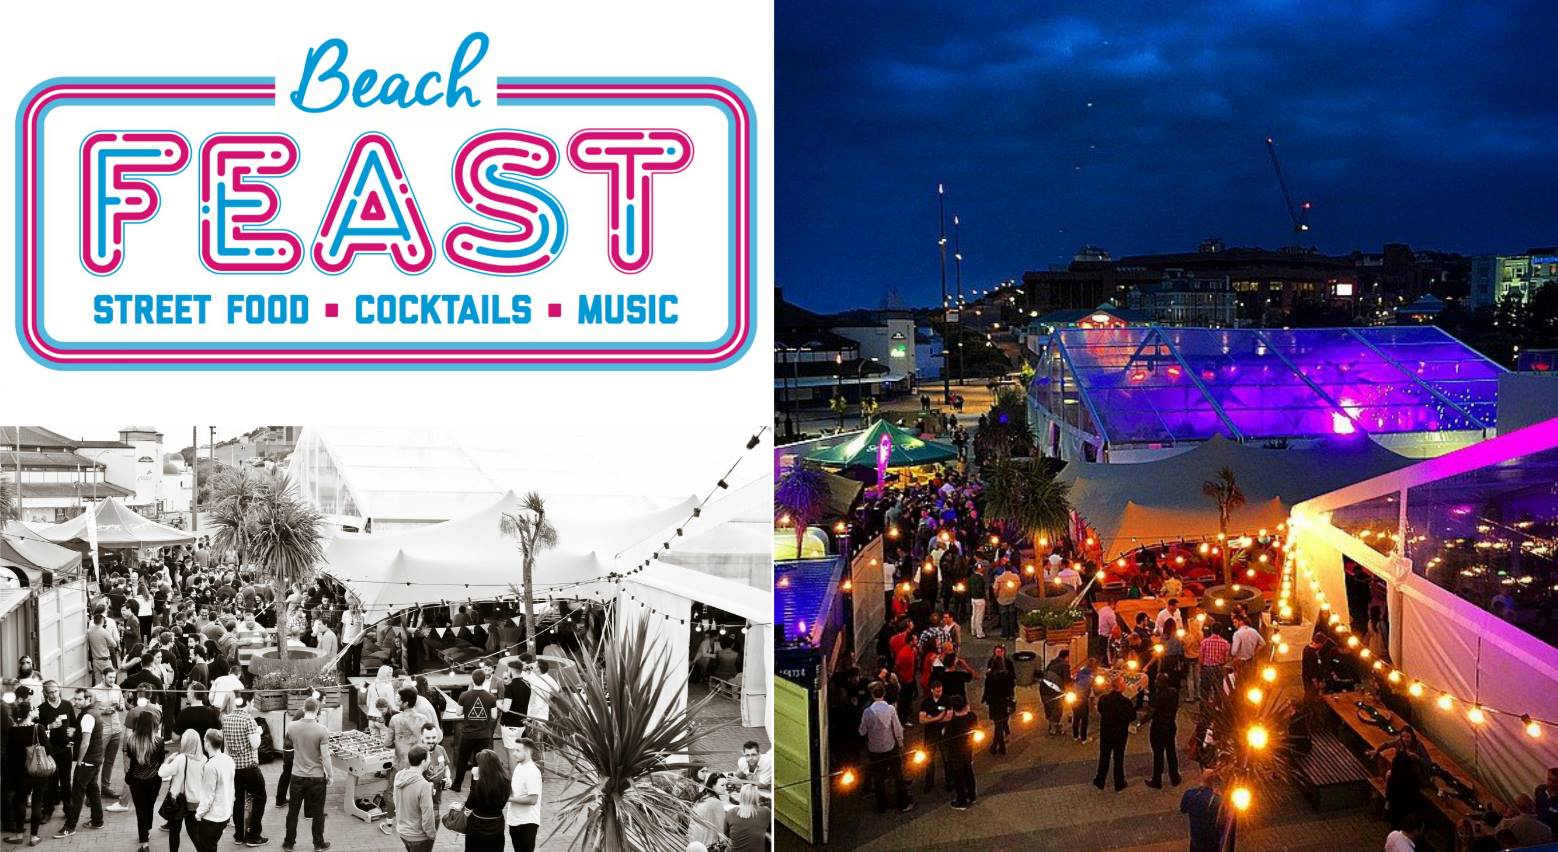 Beach Feast - Street Food, Cocktails & Music